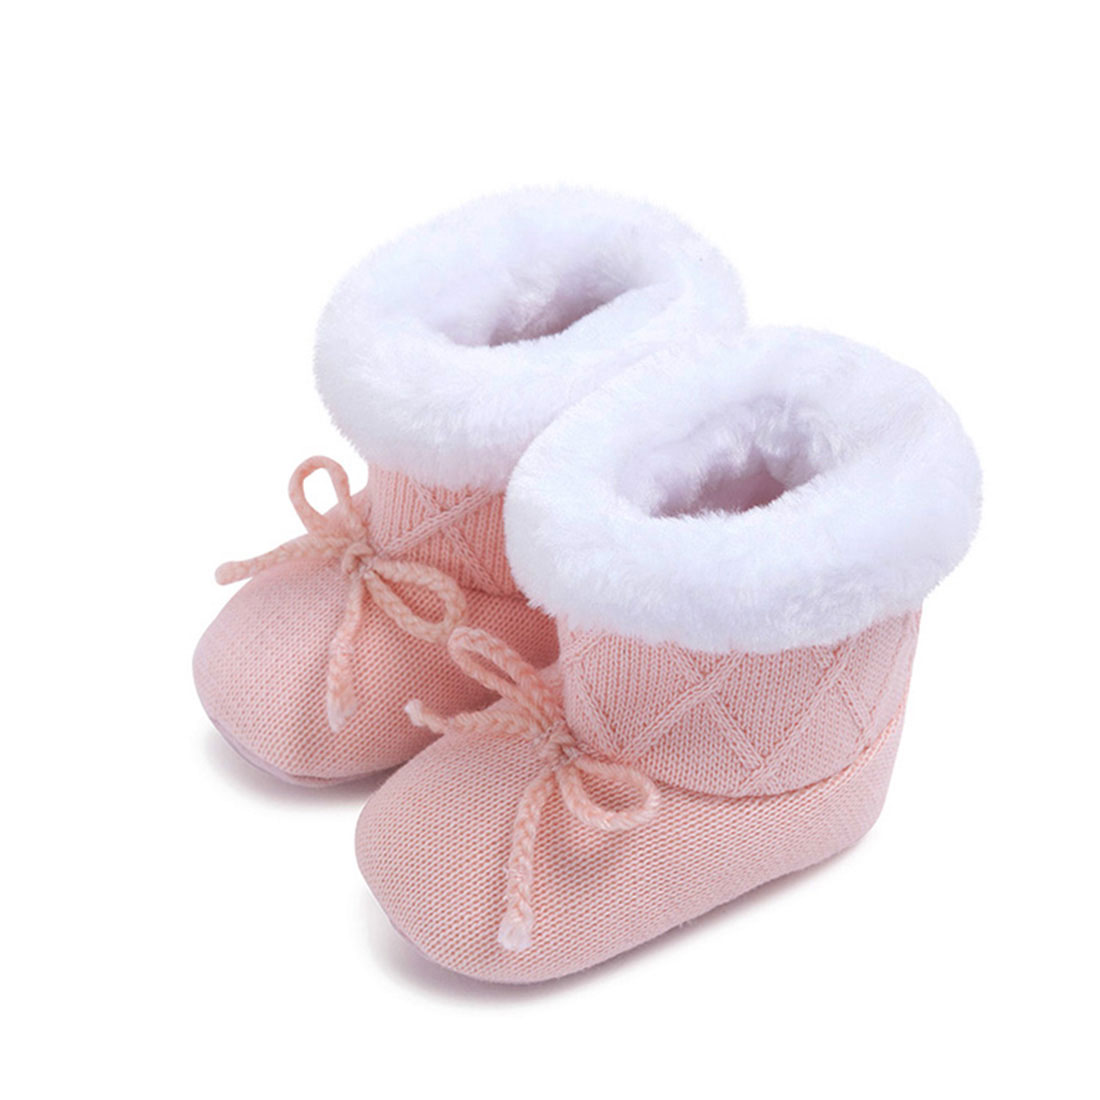 Knitting upper fur lining pink round toe comfortable winter bow best kids shoes